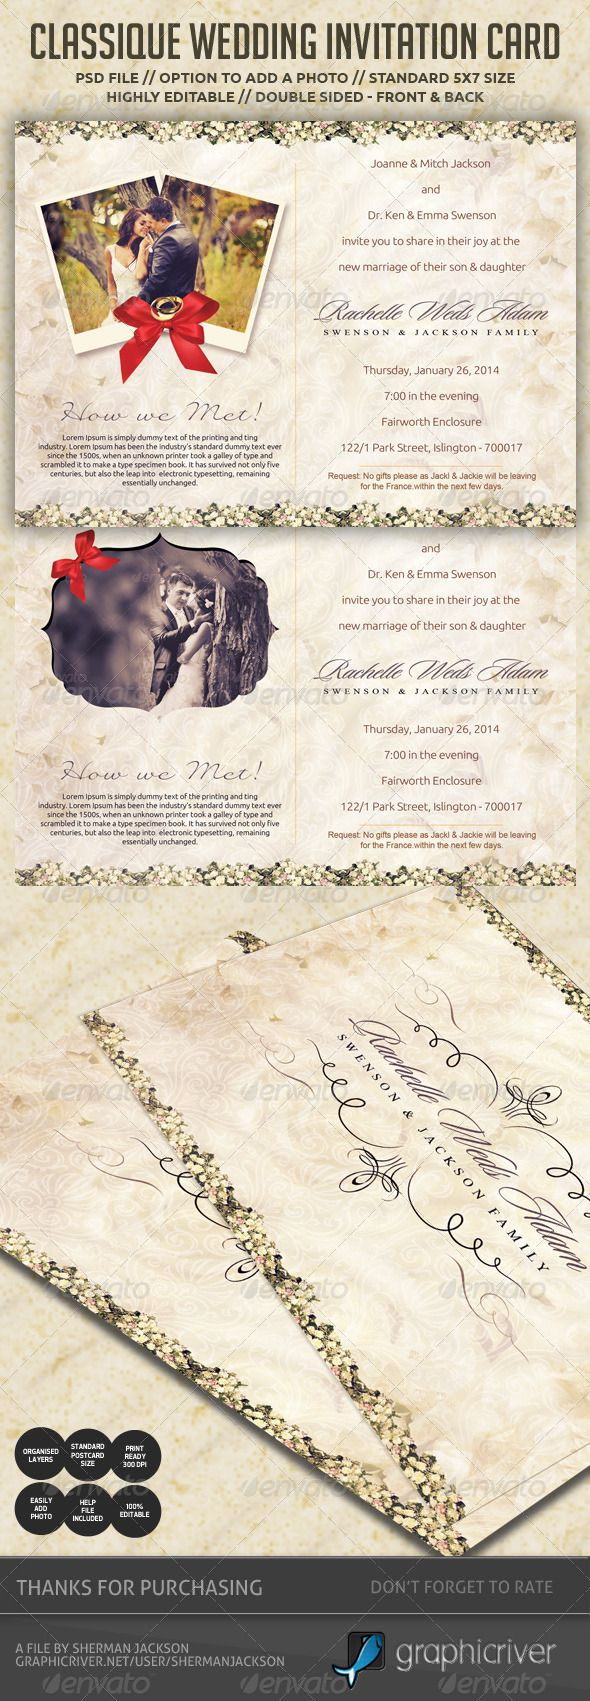 templates for wedding card design%0A Classique Wedding Invitation   Postcard  Print TemplatesDesign